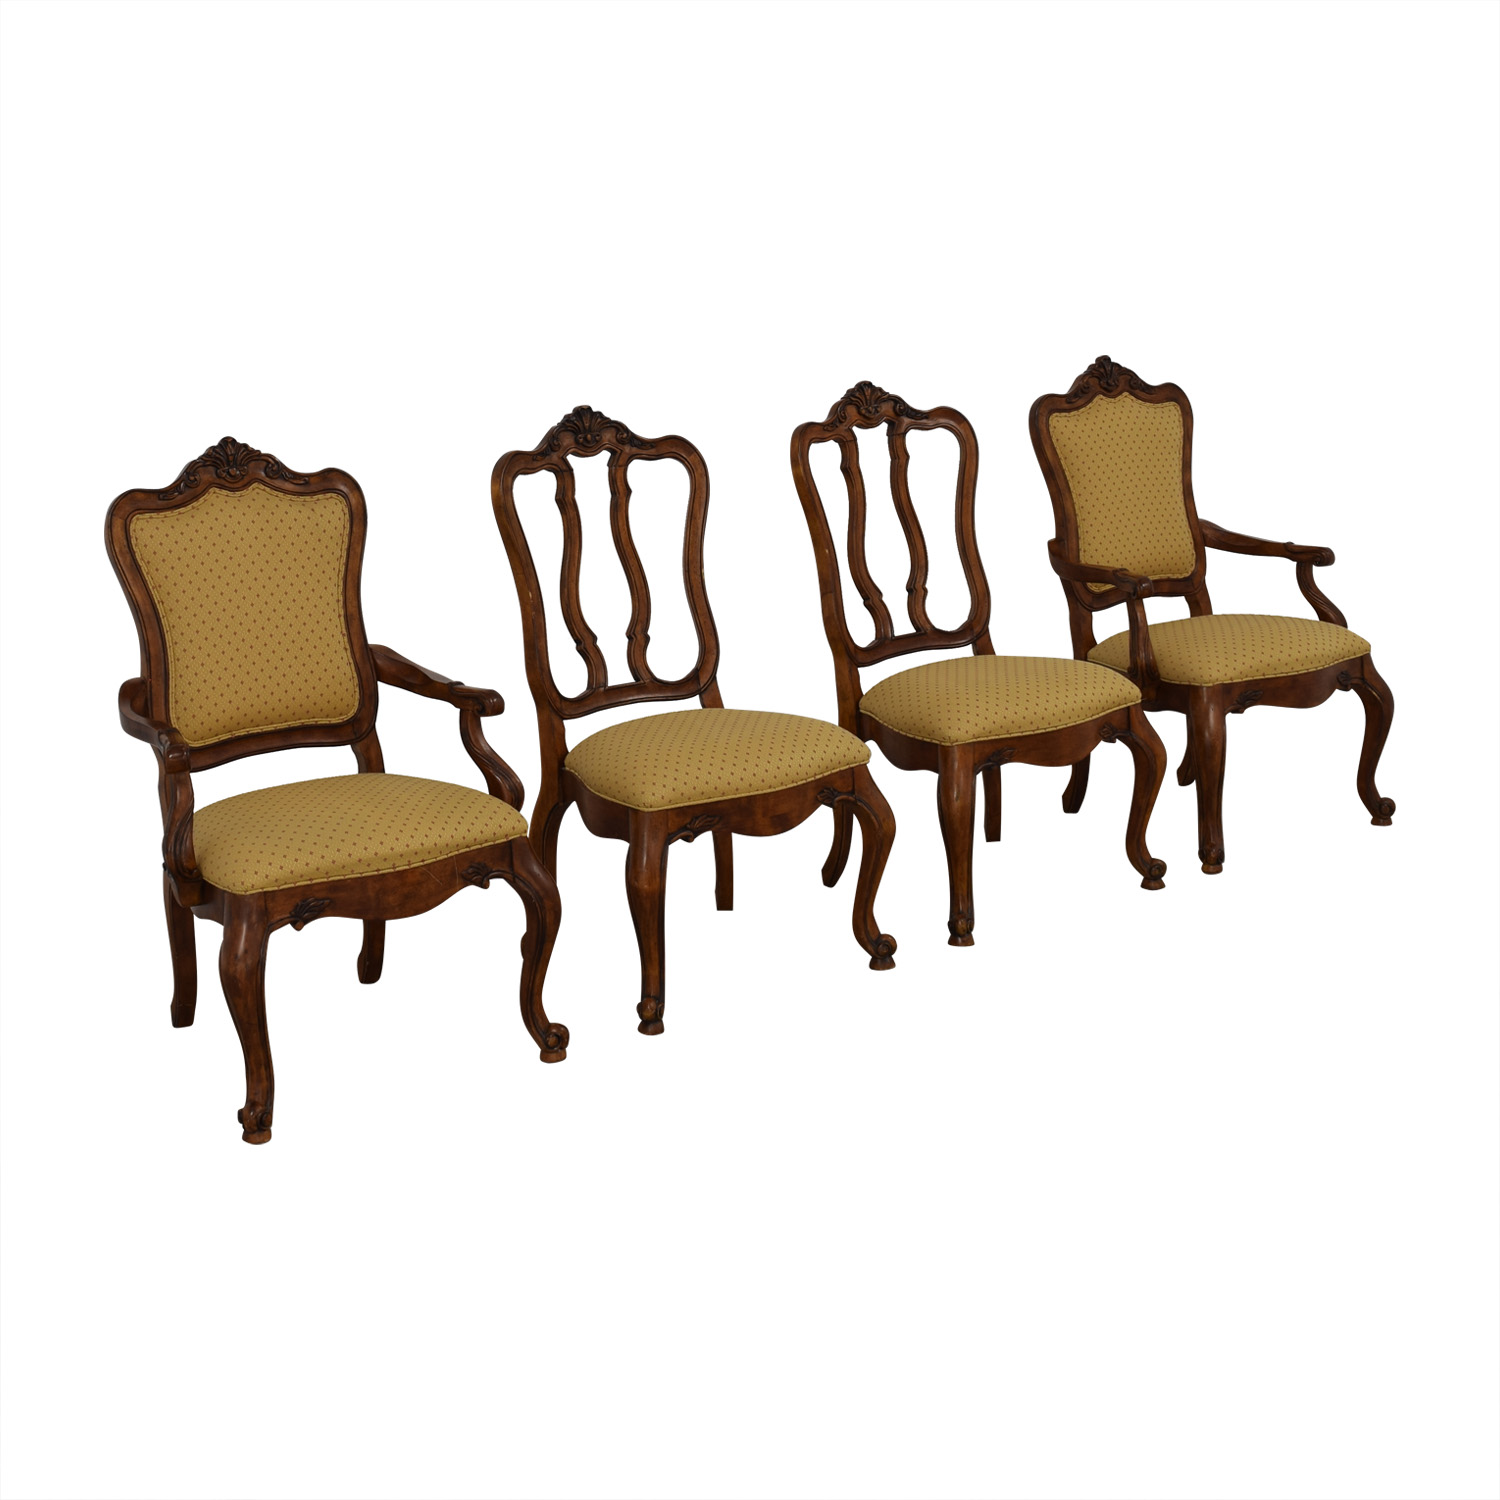 Ethan Allen Ethan Allen Dining Arm Chairs and Side Chairs price